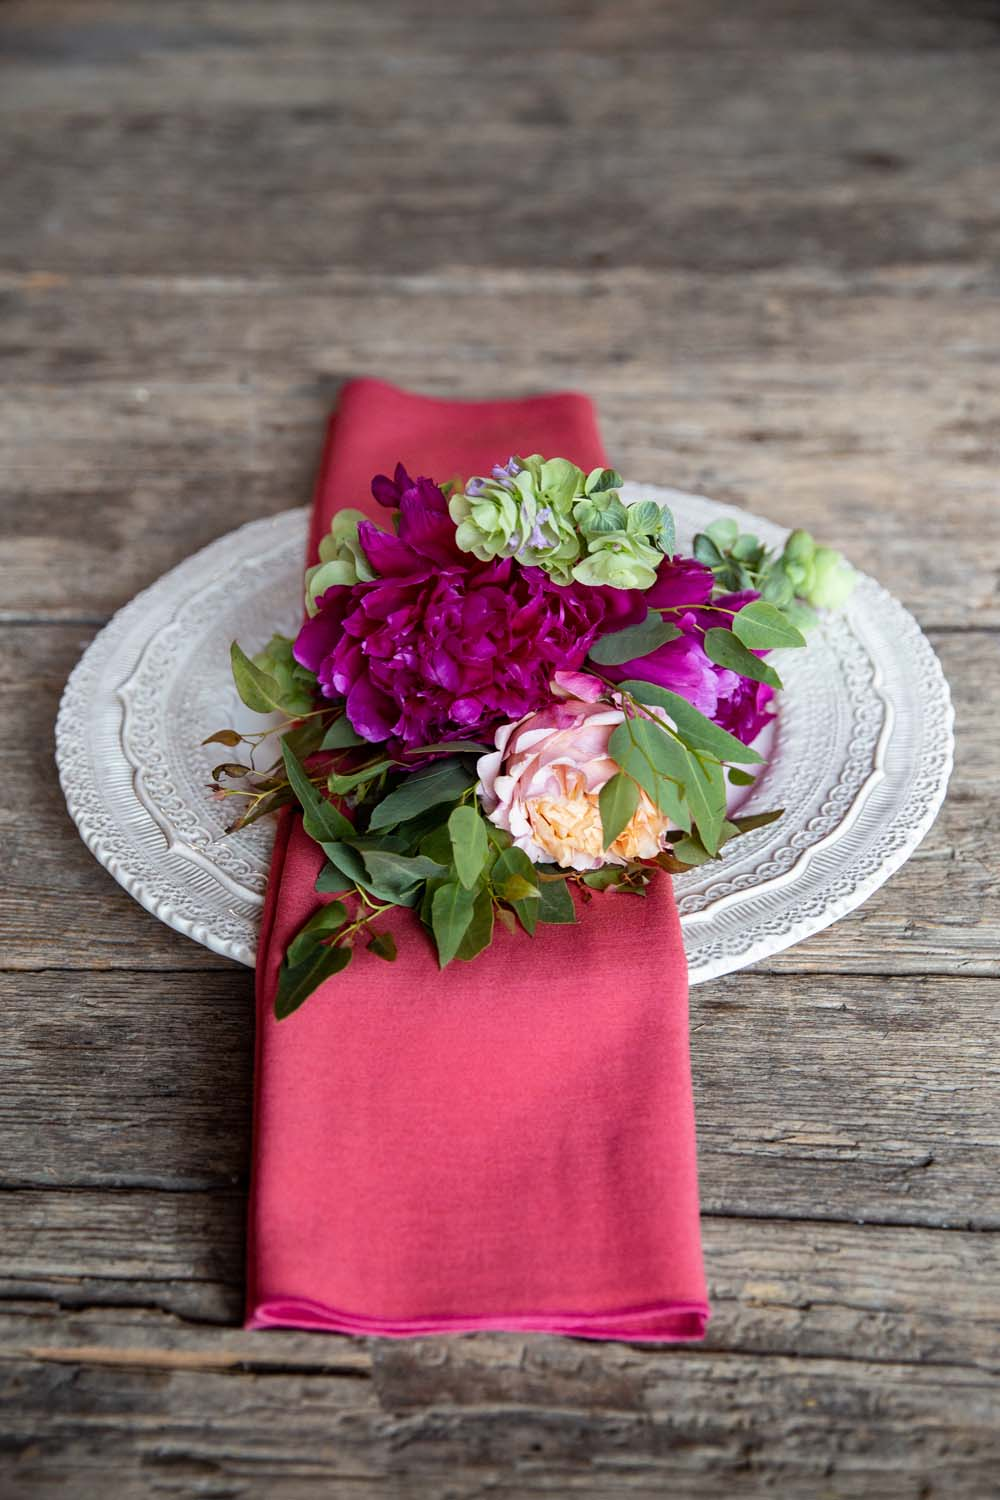 This Styled Shoot Was Inspired By Medieval Royalty - Plating